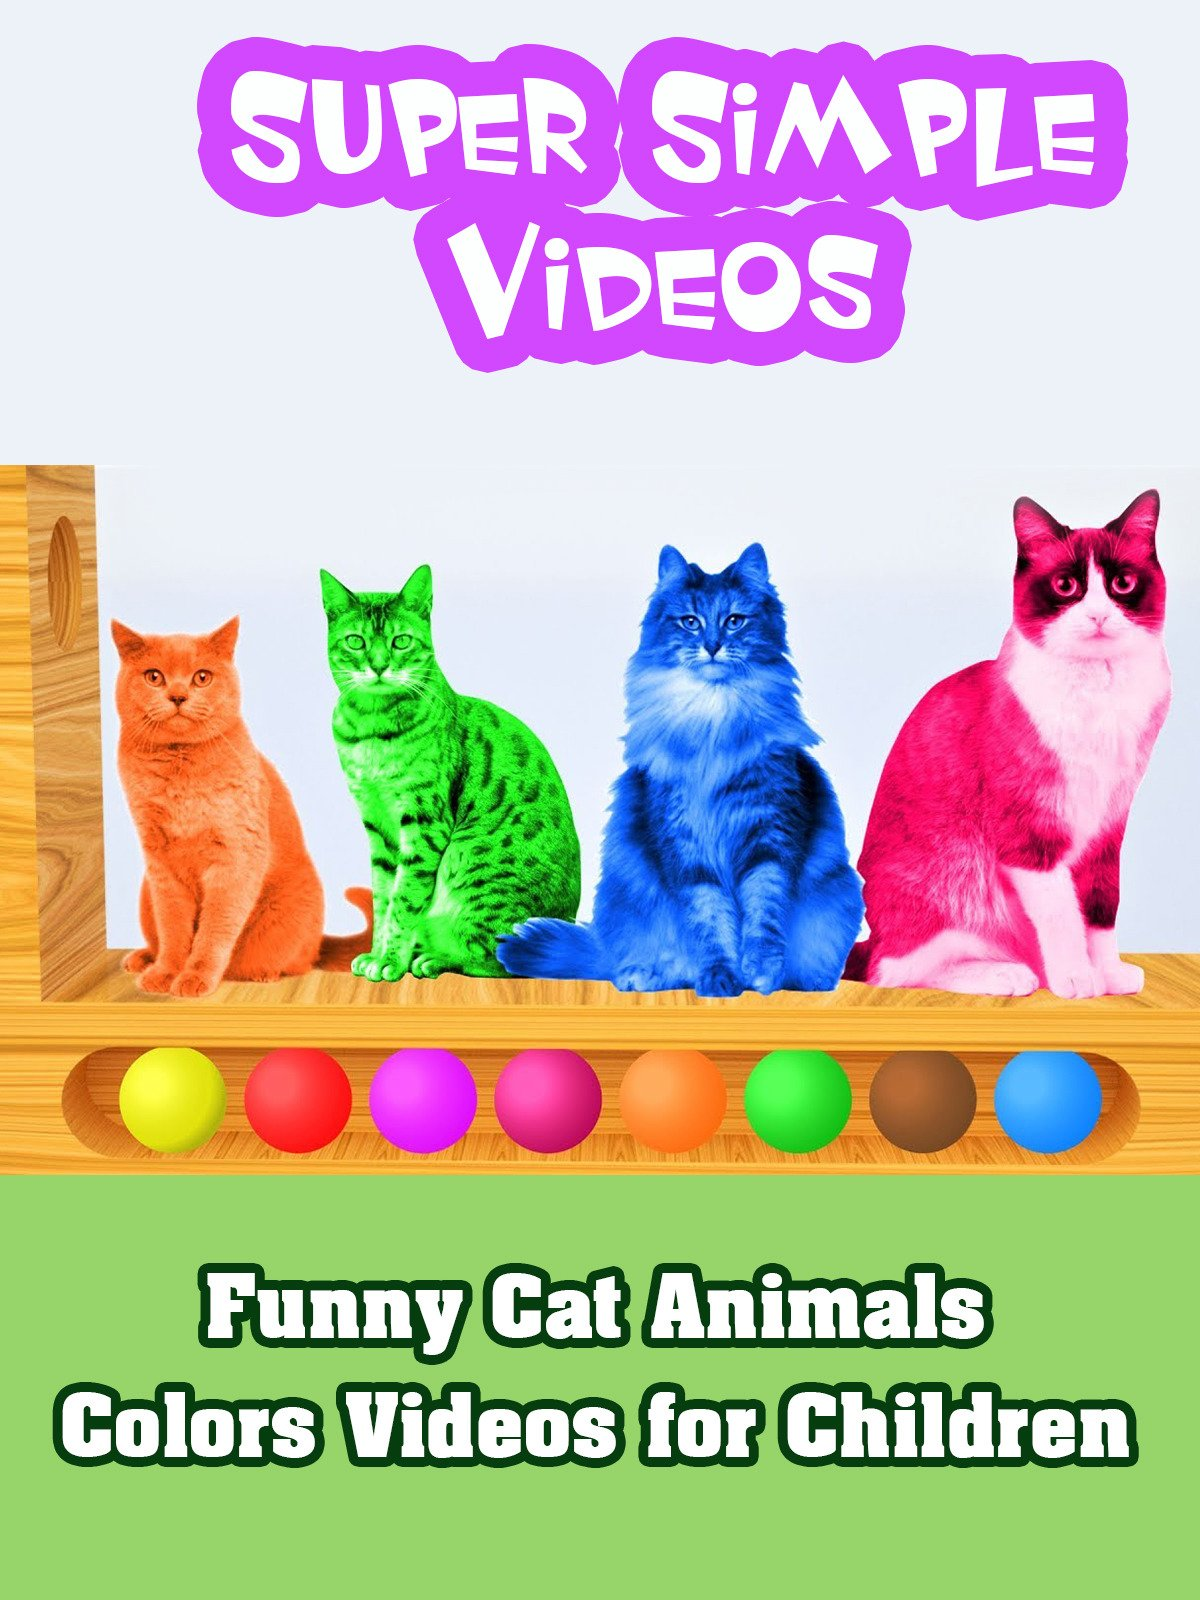 Funny Cat Animals Colors Videos for Children